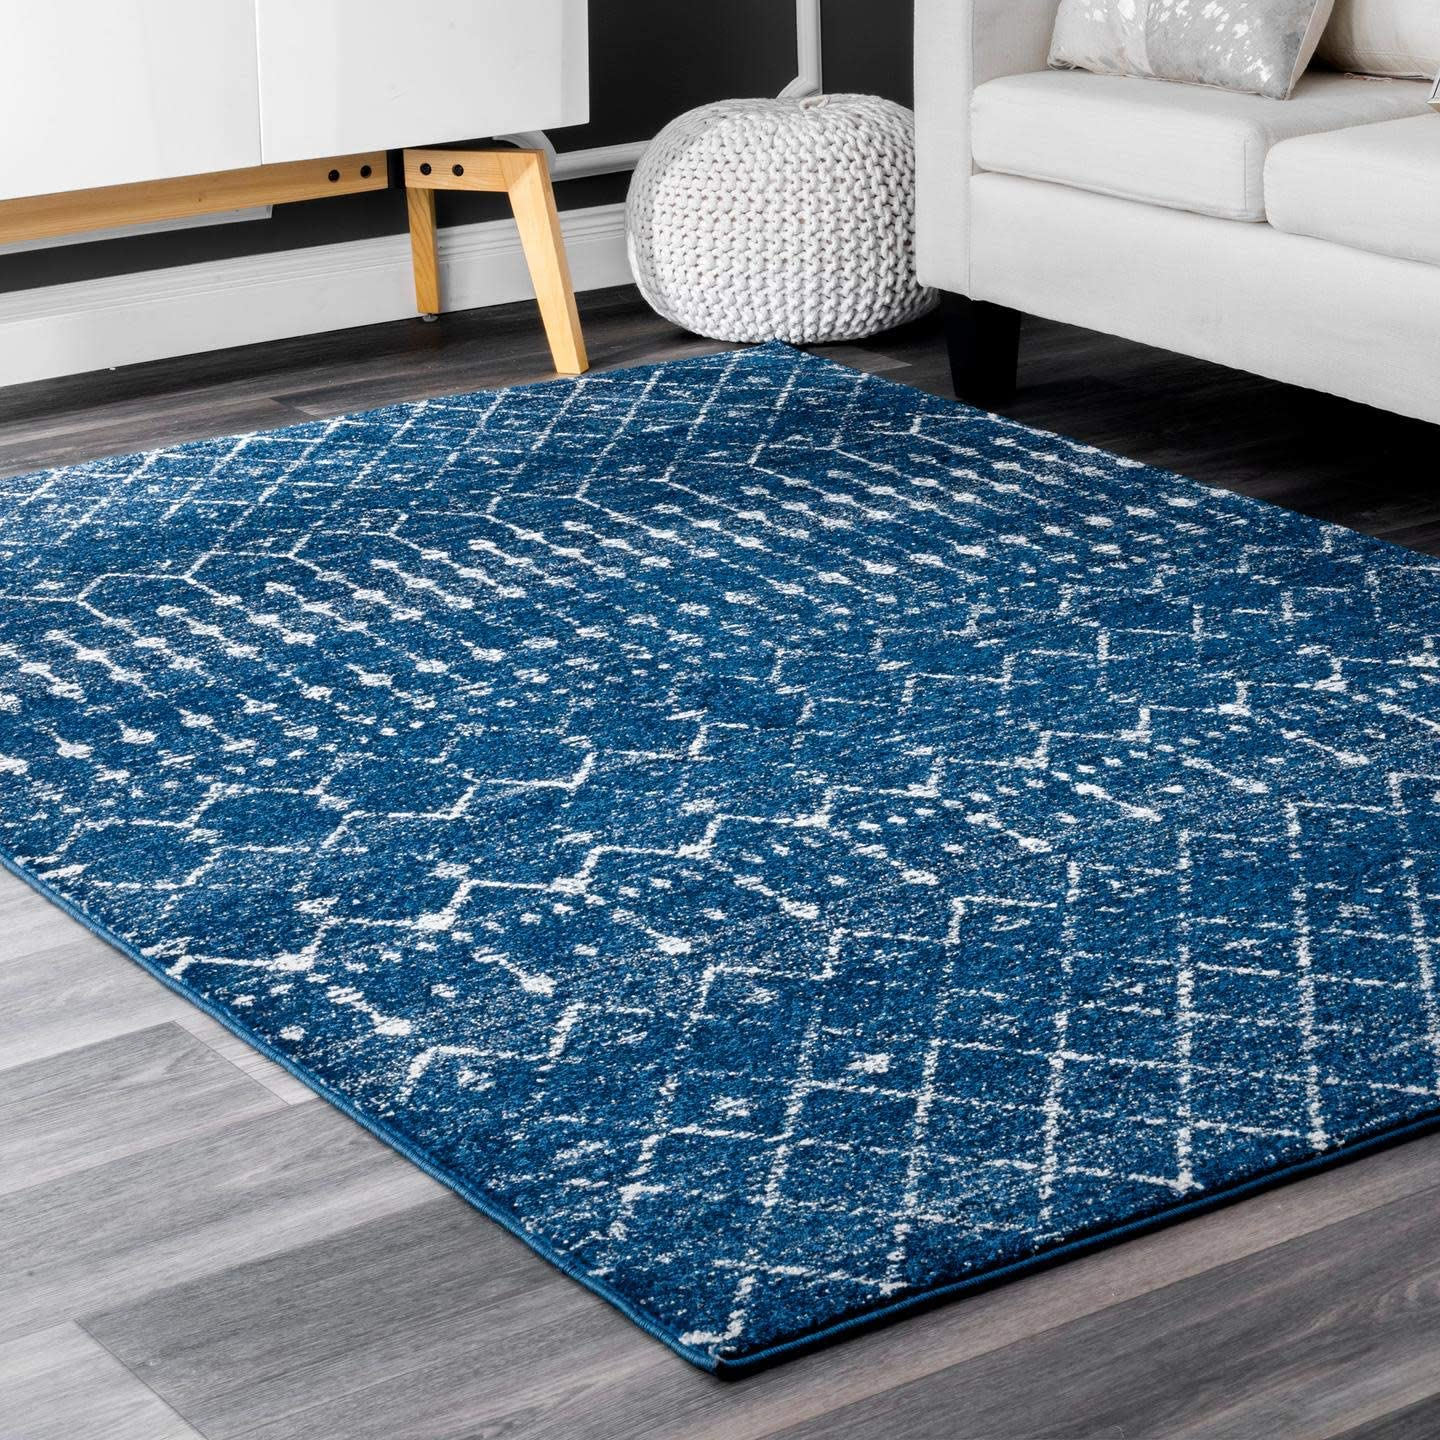 nuLOOM Moroccan Blythe Accent Rug, 2' x 3', Blue